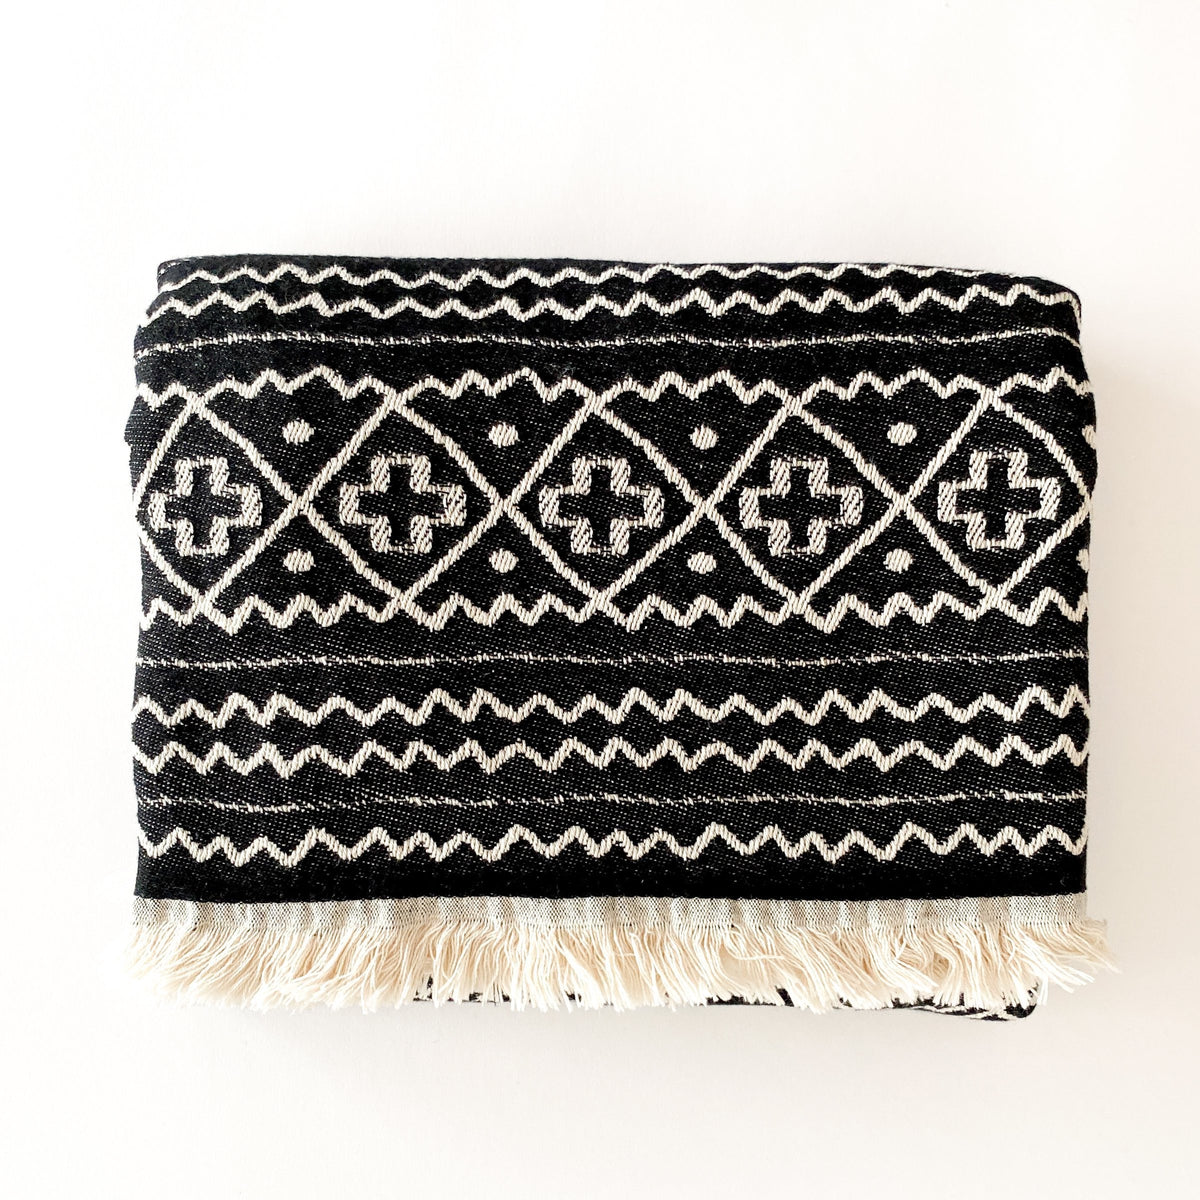 Moon | Black and White Geometric Motif Throw-Blanket